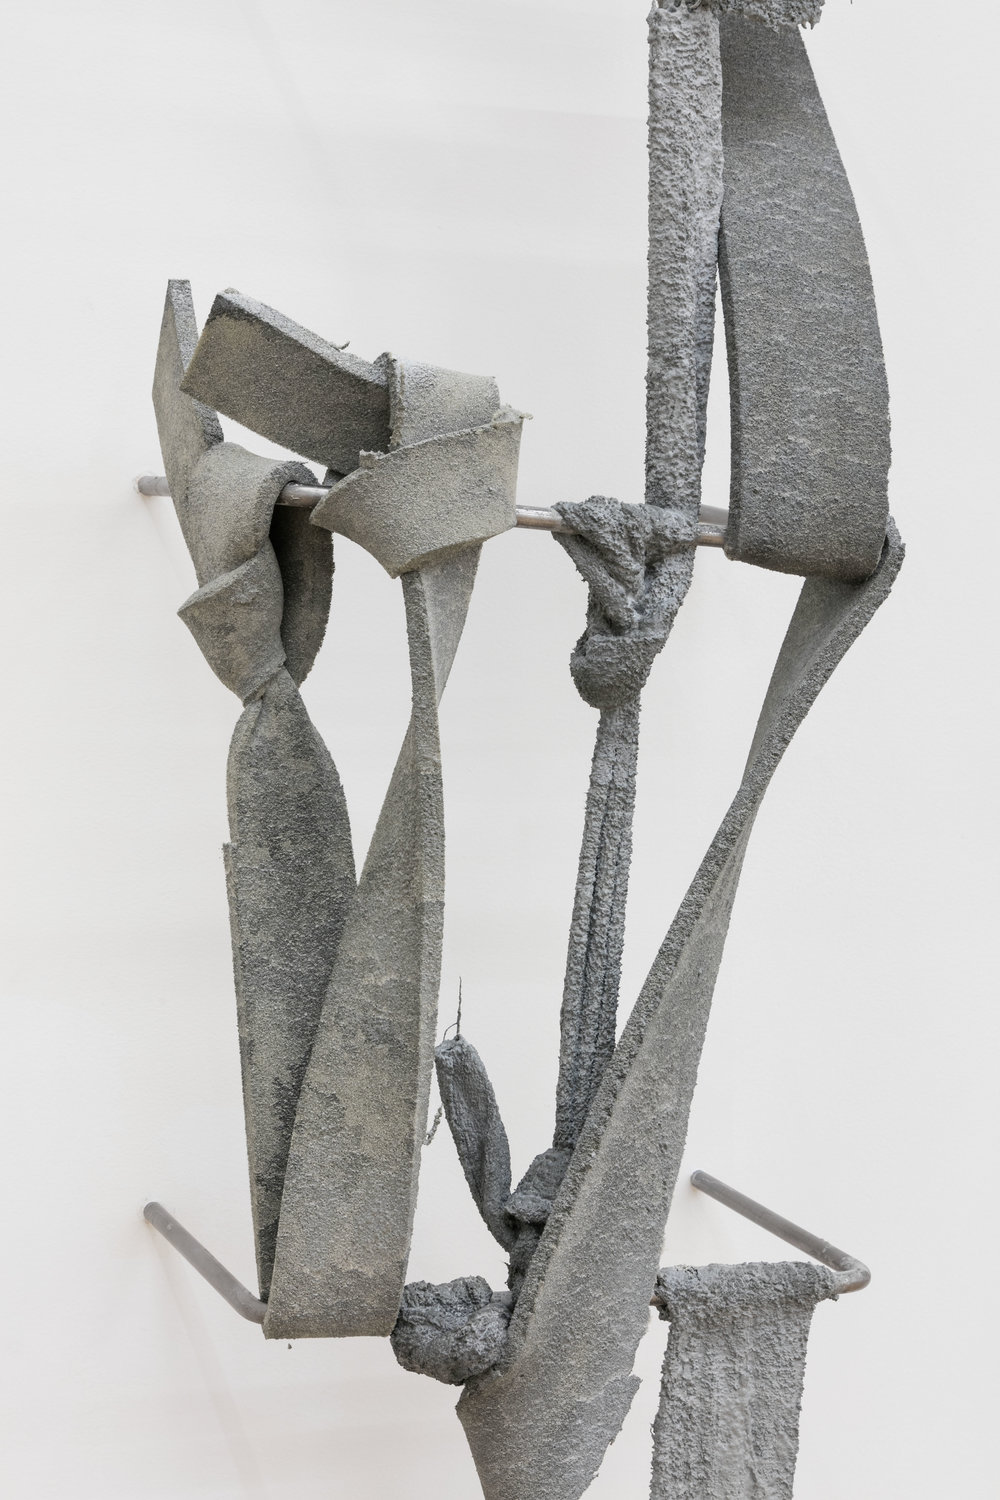 Nikita Gale,  FIXED LOOP IV  (detail), 2018, concrete, polyurethane foam, terrycloth, steel, 115 × 18 × 13 in.